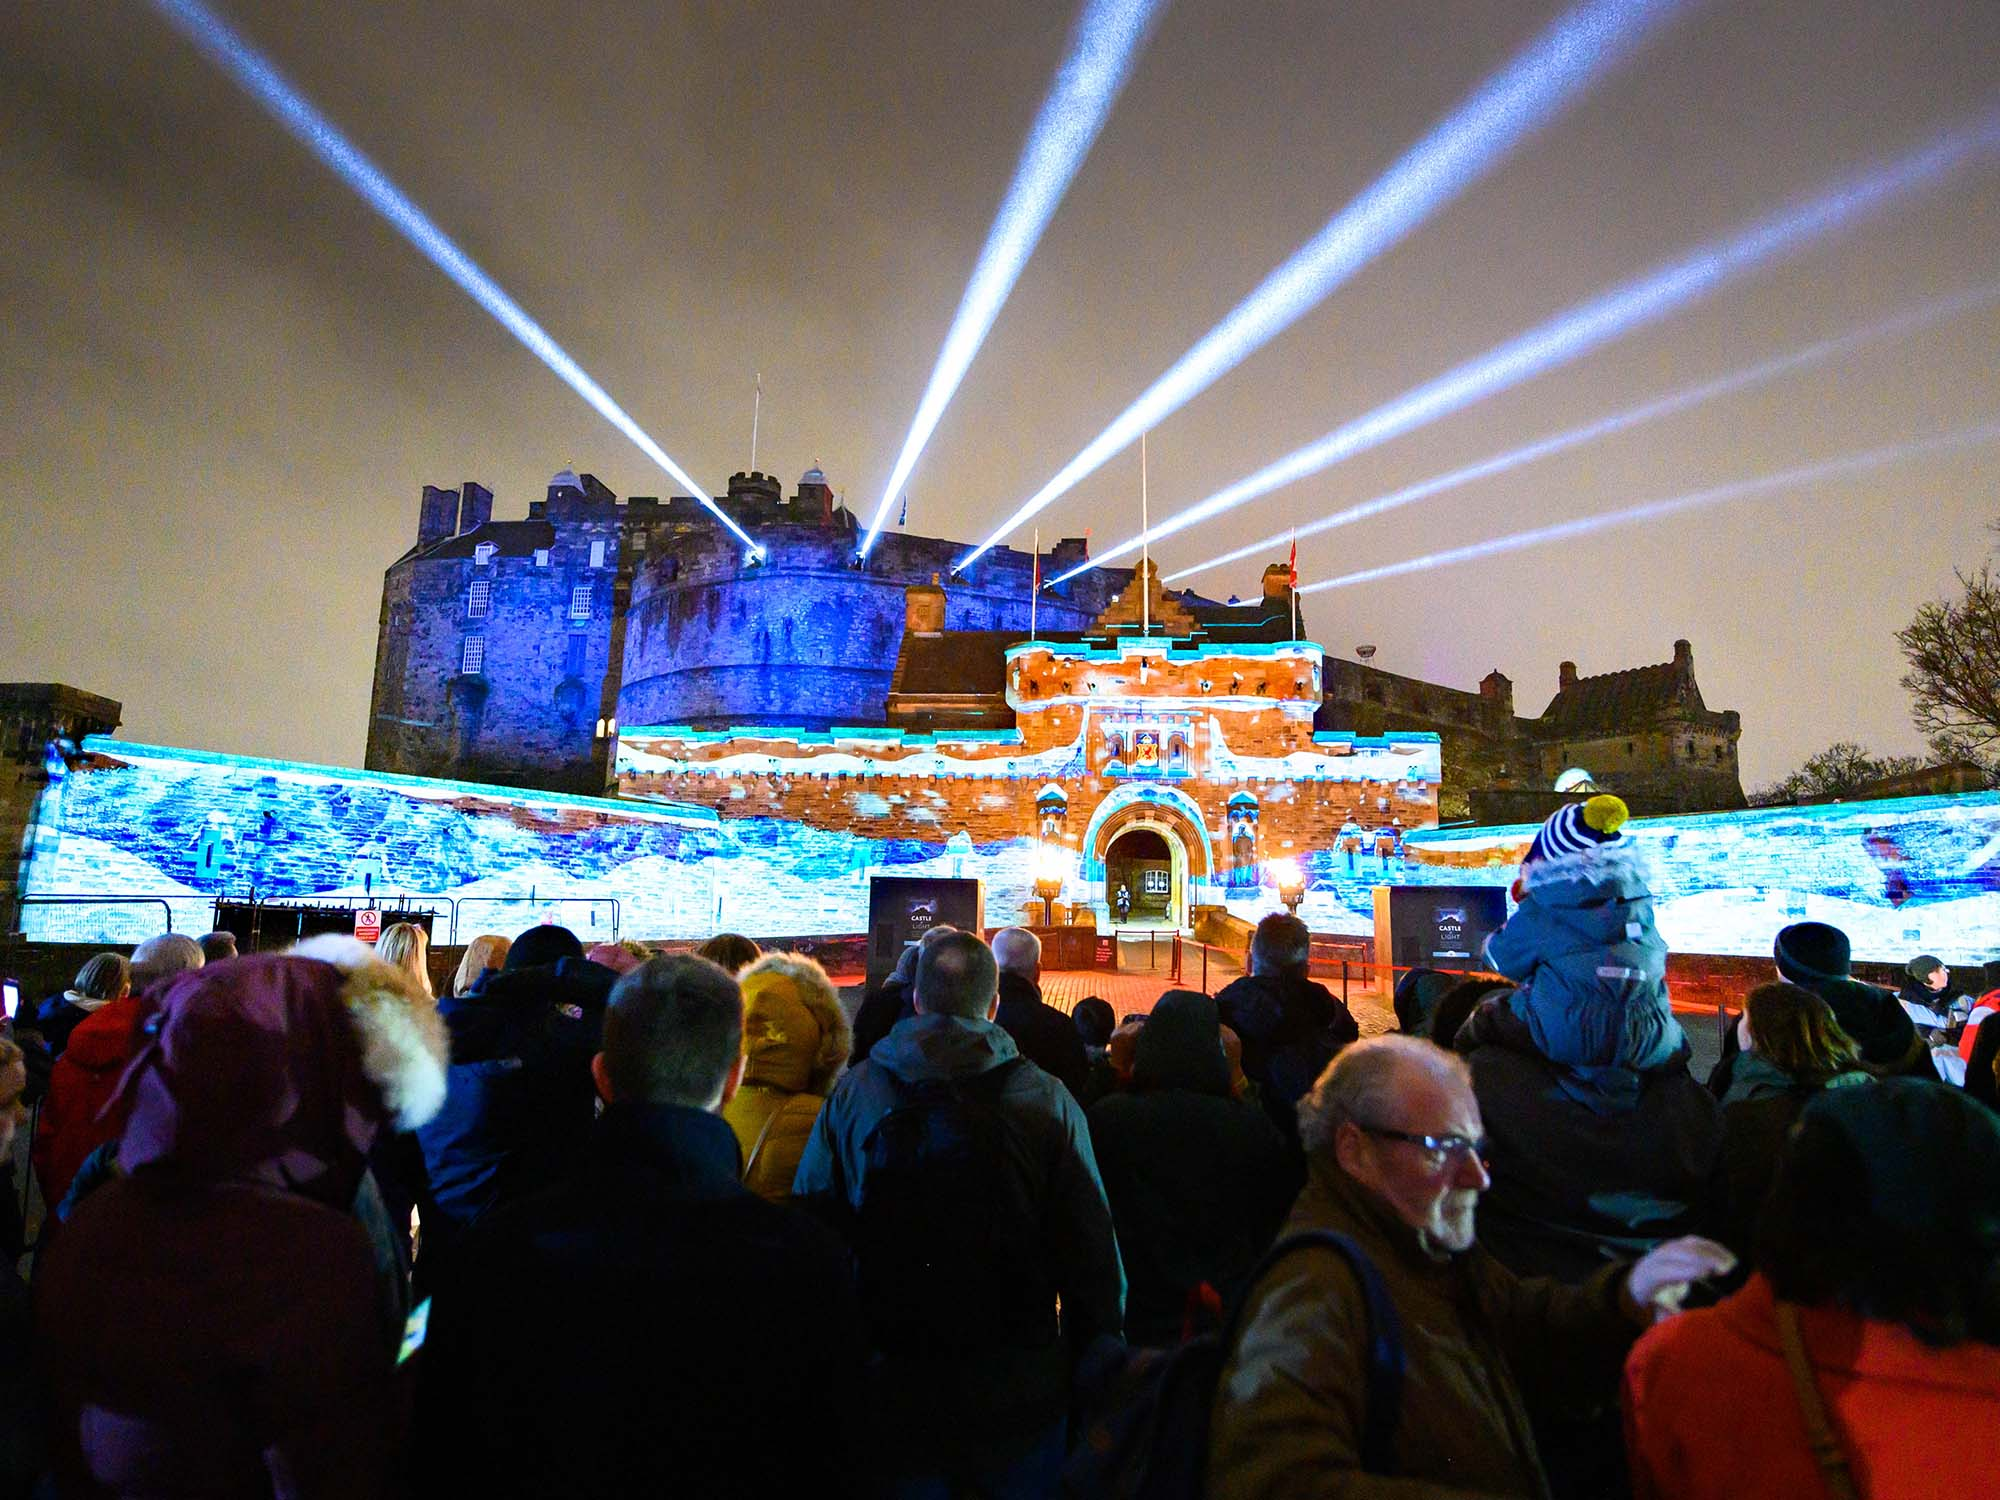 Castle of Light, Christmas Projections Show Light Walk